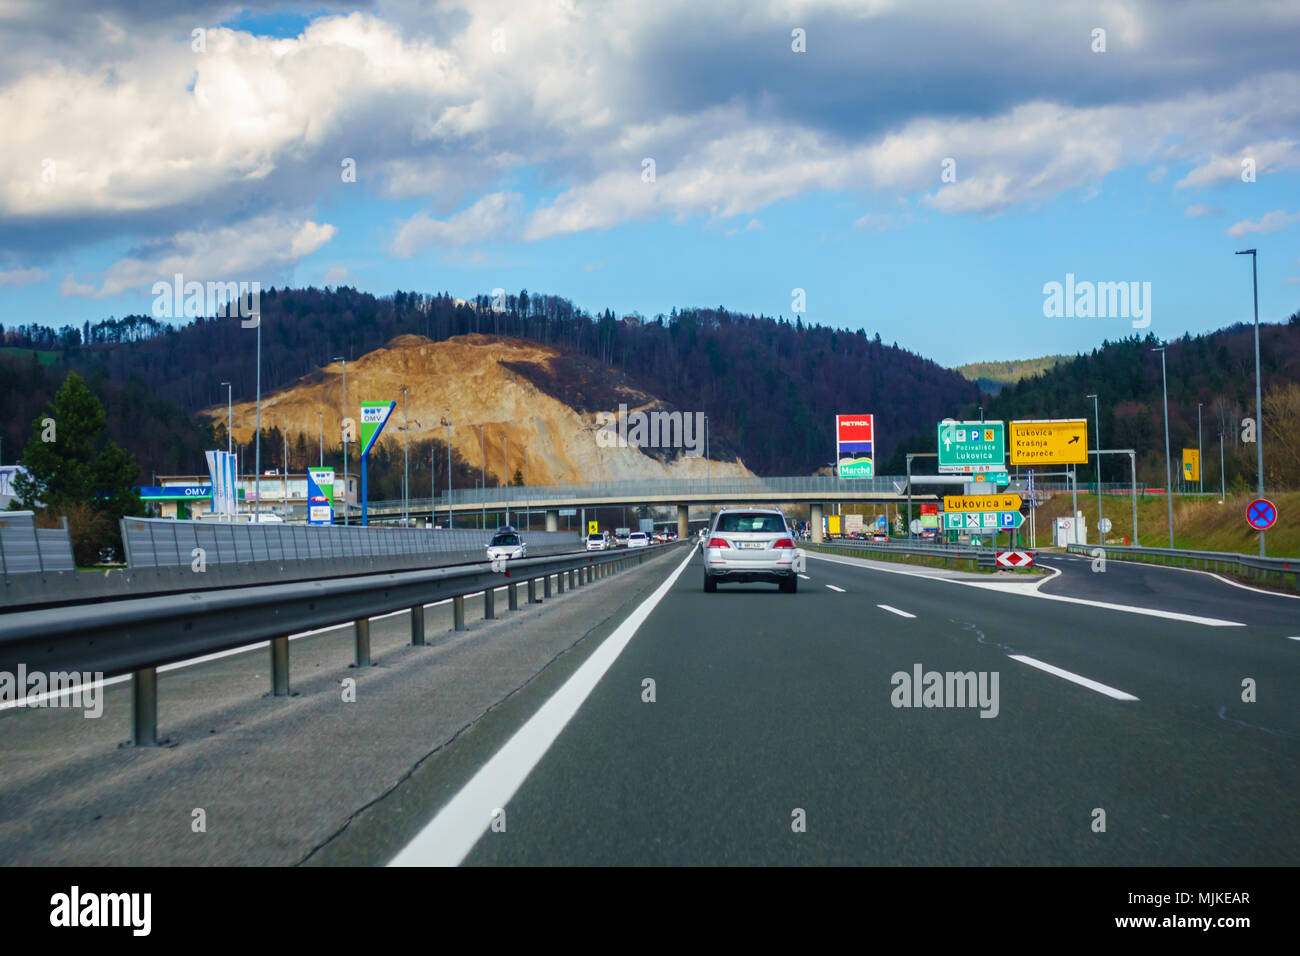 Resting place Lukovica on the A1 highway in Slovenia - Stock Image